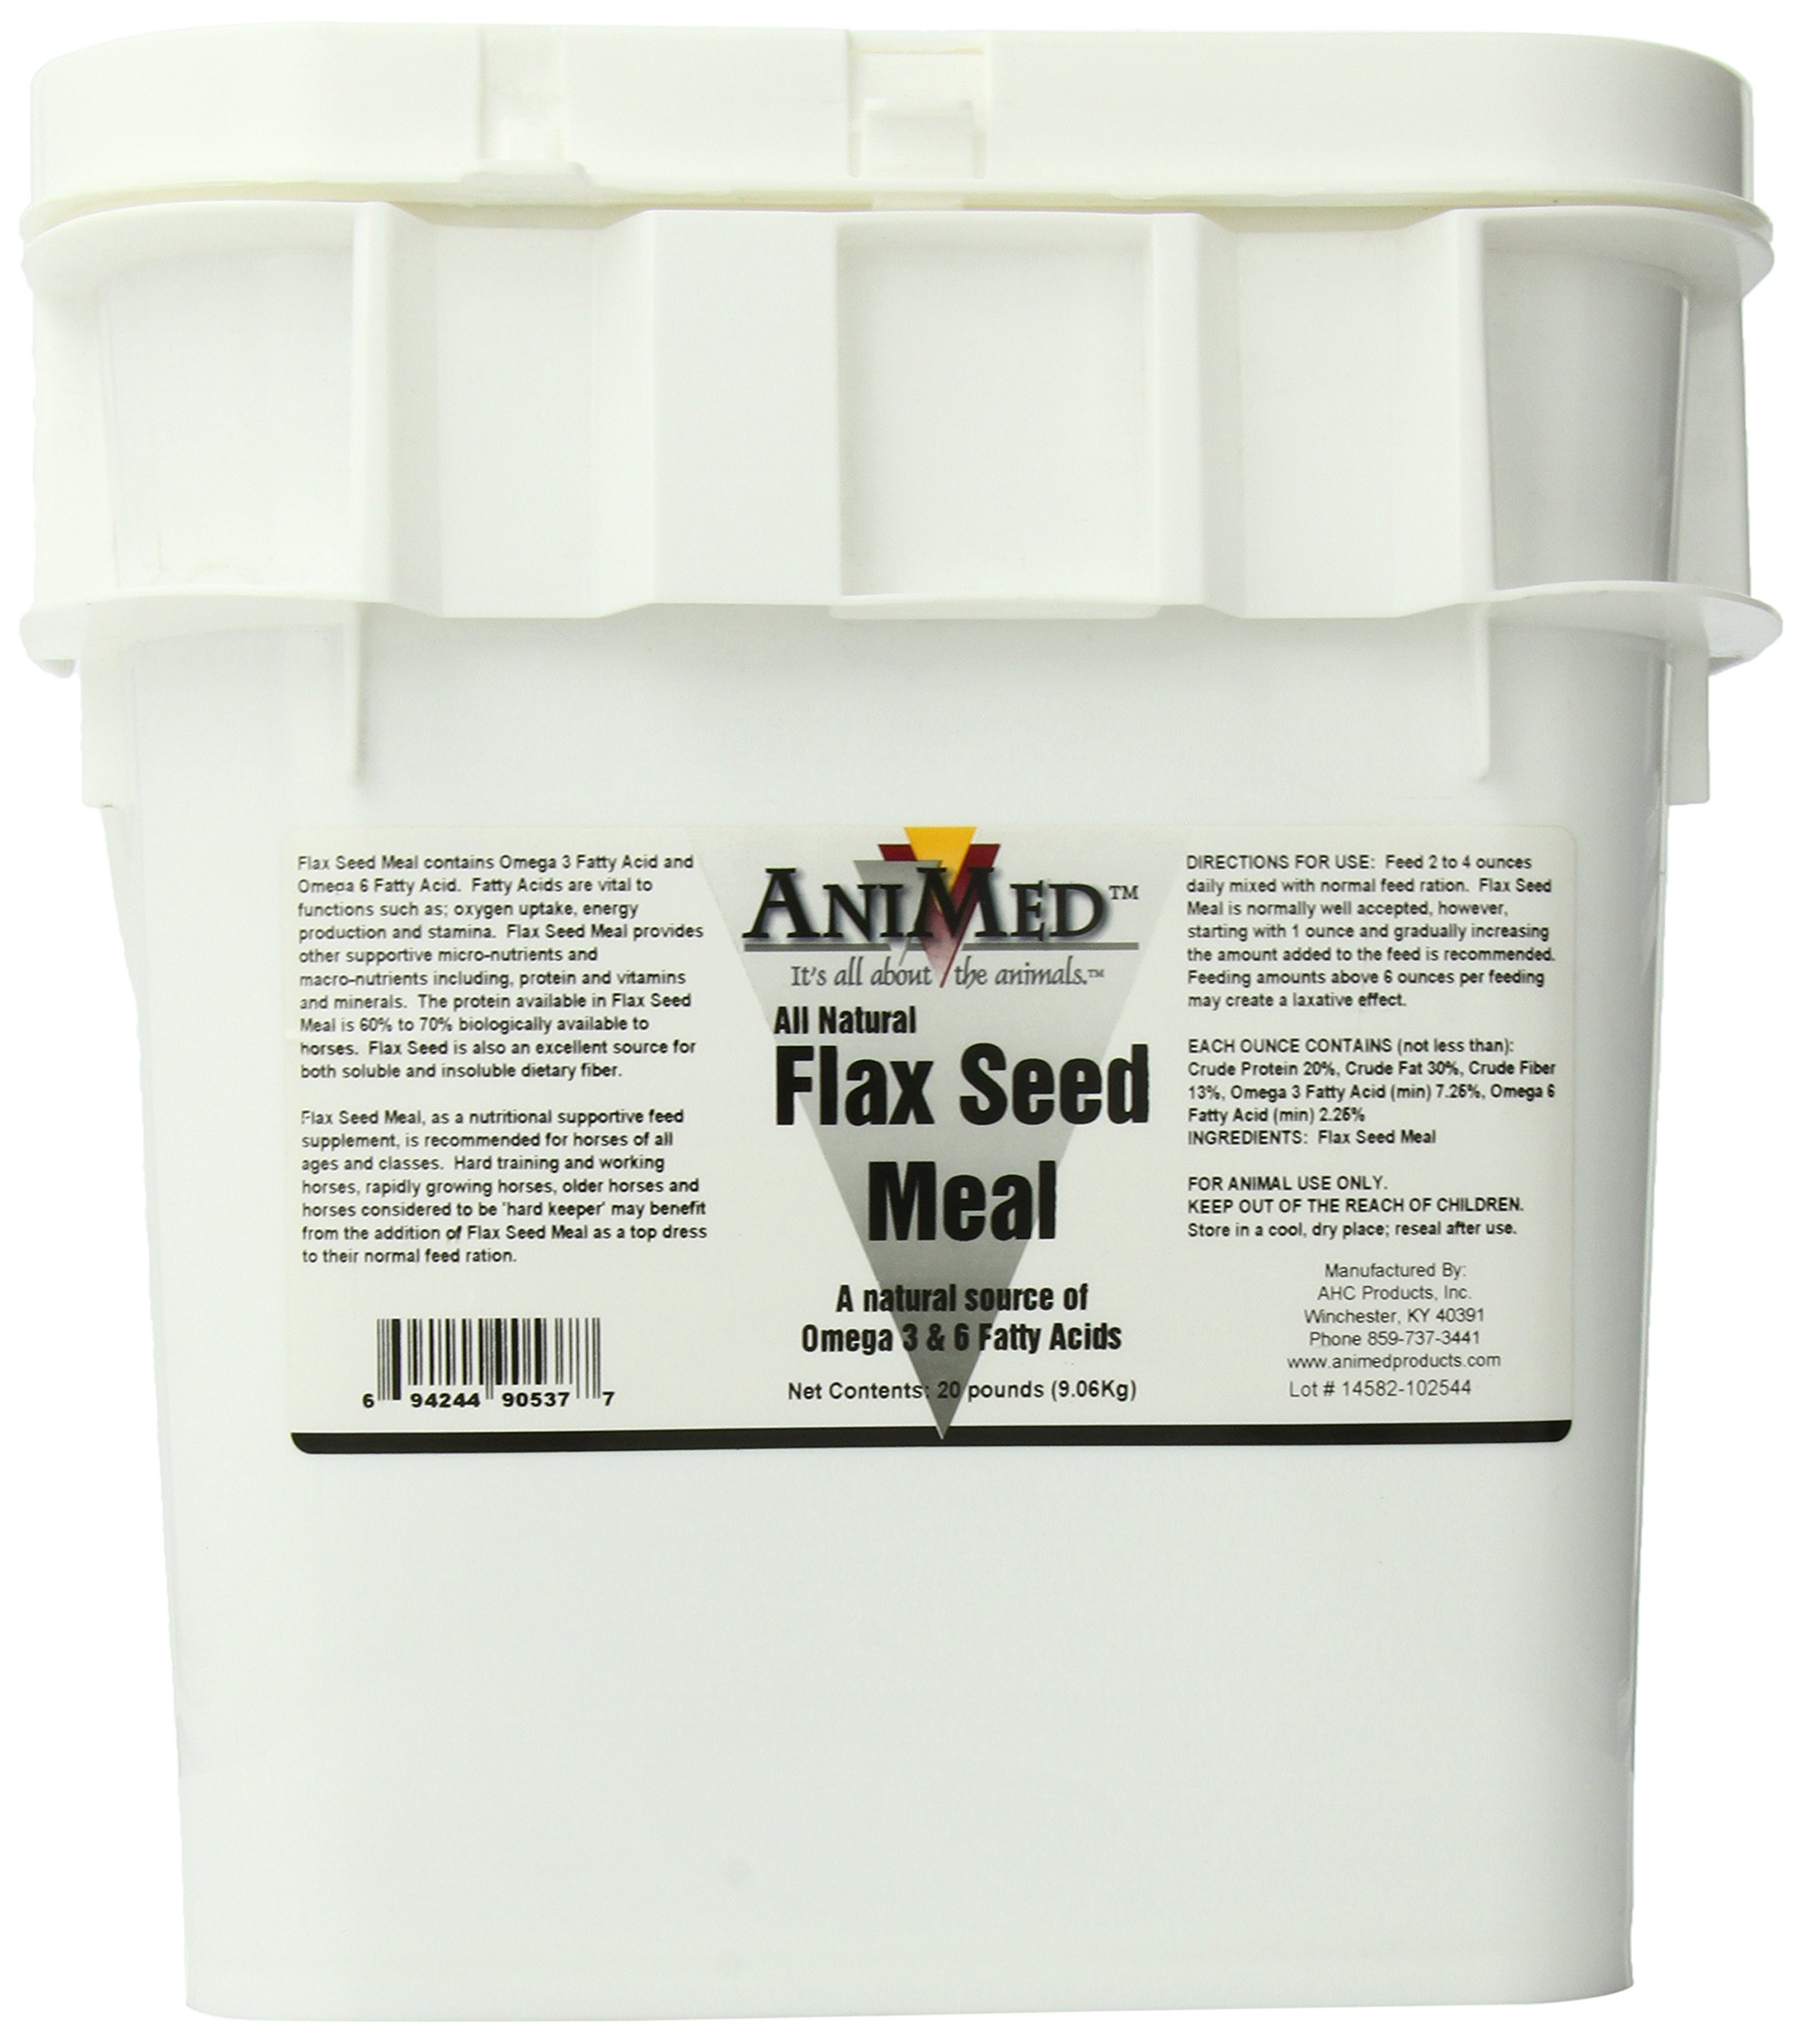 AniMed Flax Seed Meal 20# 90537